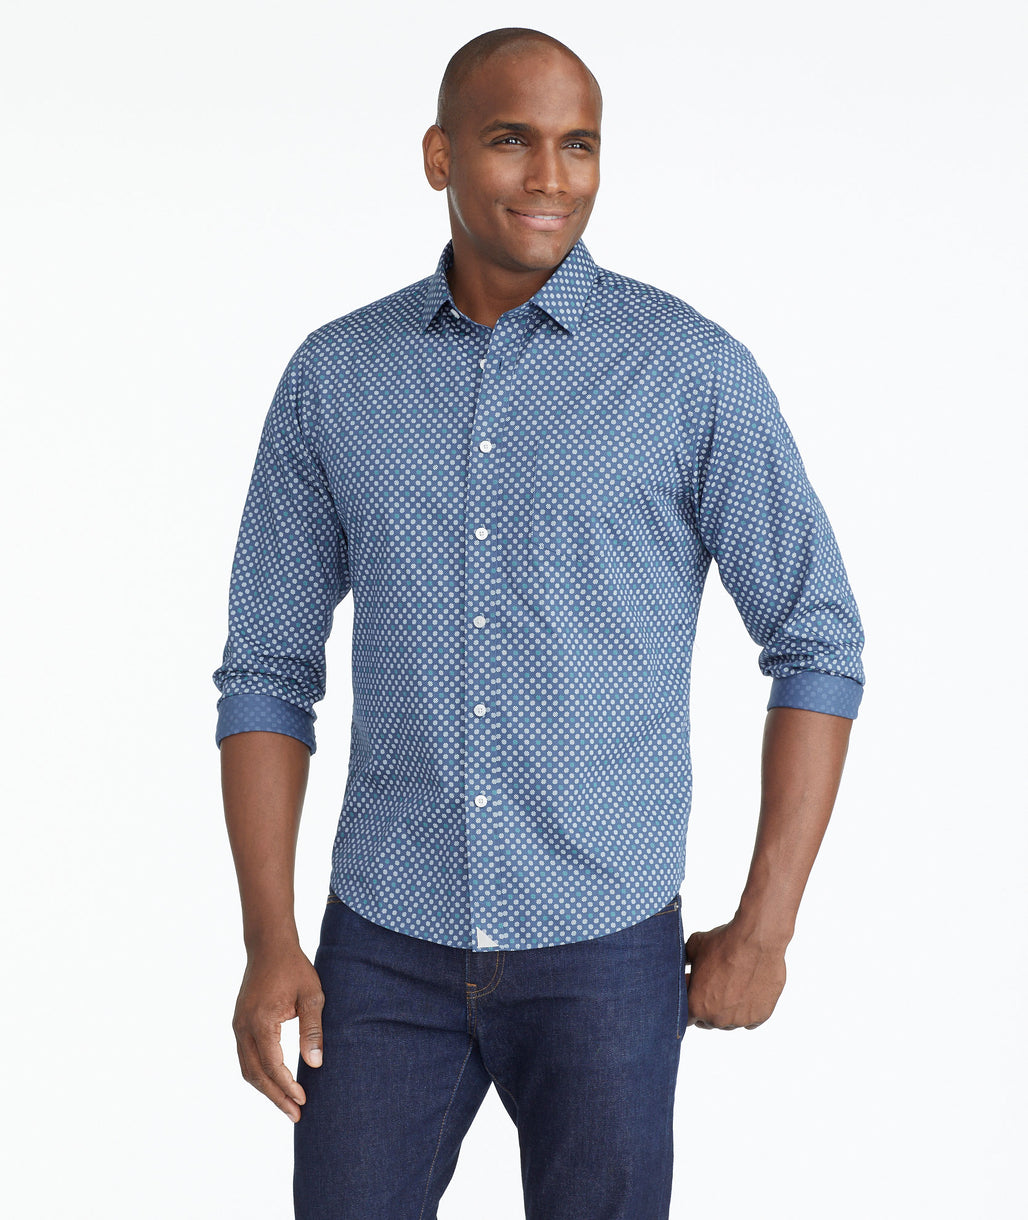 Model wearing a Navy Classic Cotton Shirt with Geometric Dot Print